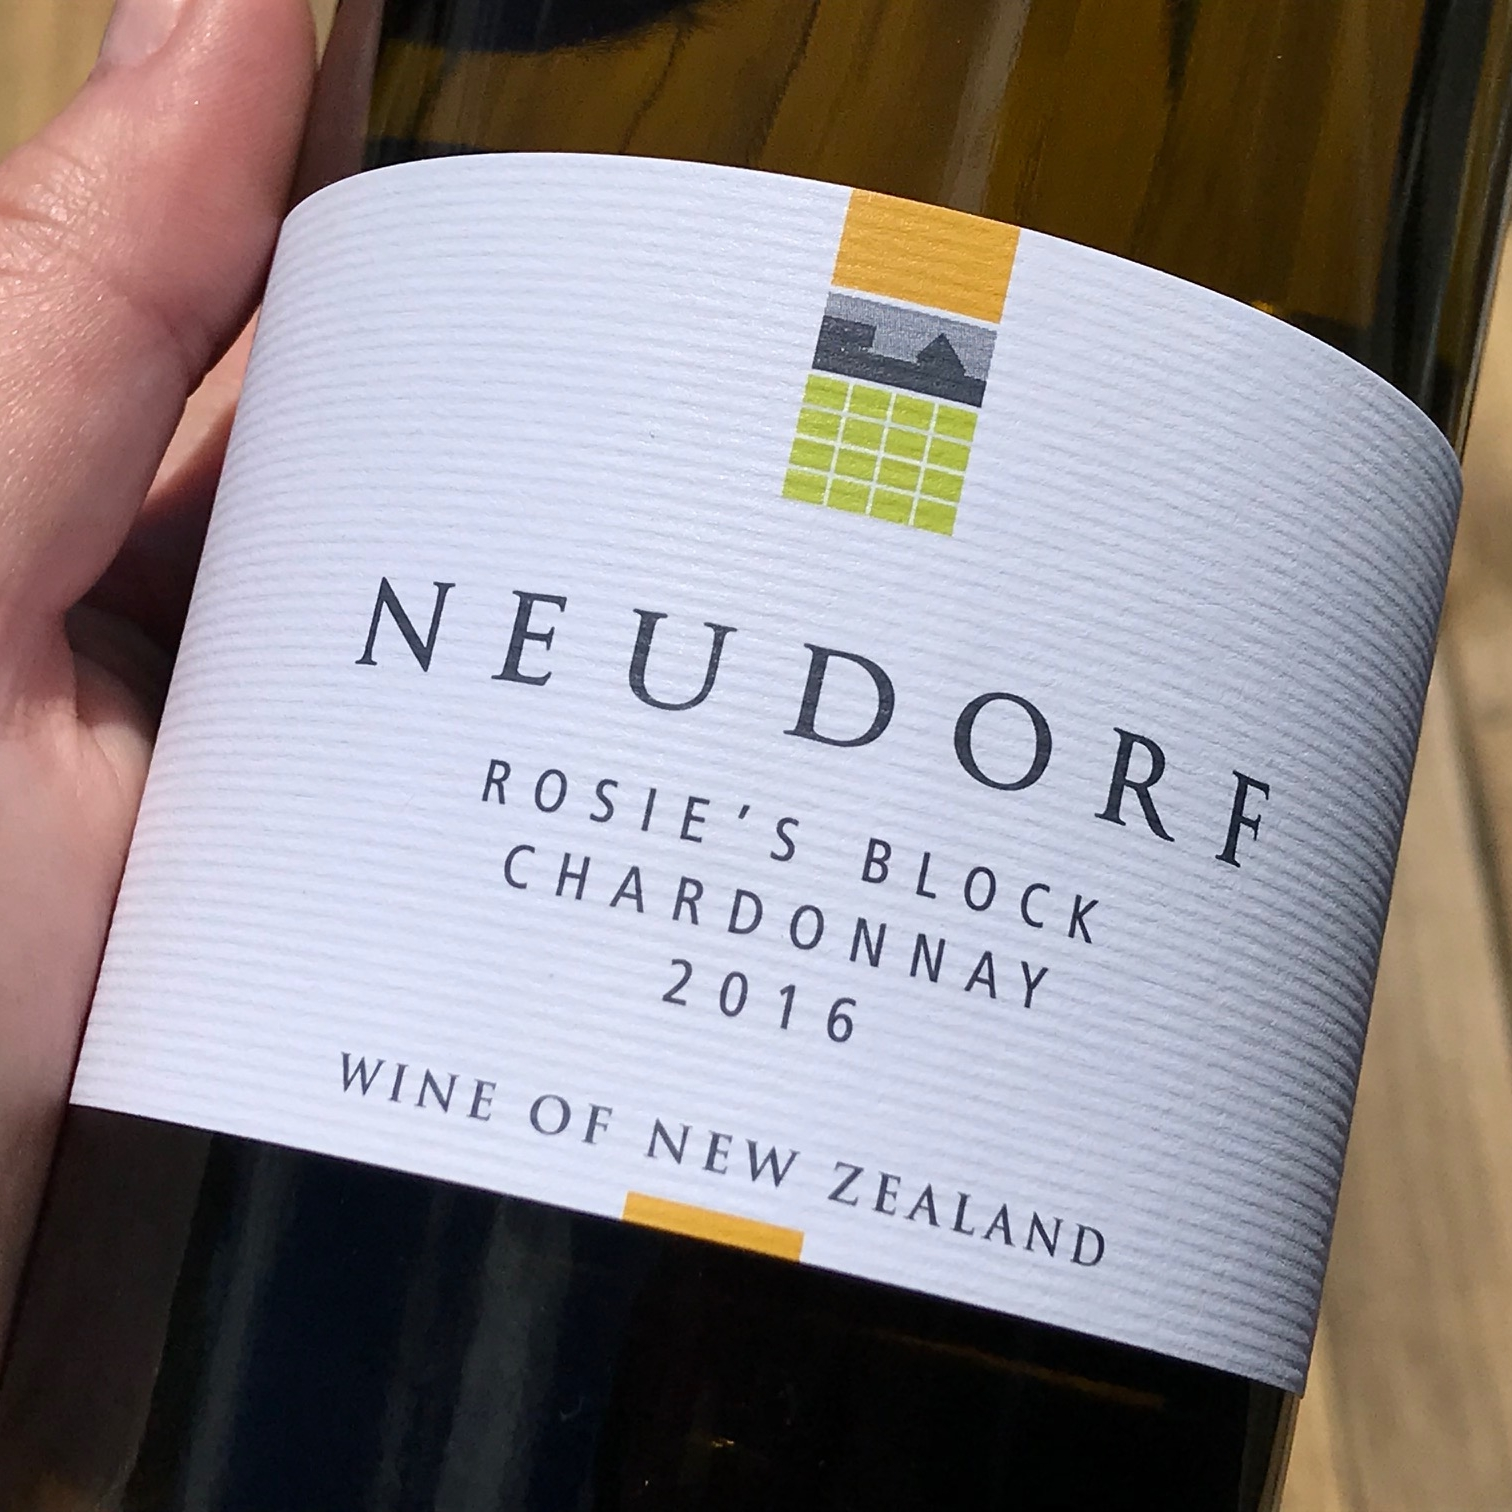 Neudorf chardonnay, Nelson. The Doubtful Traveller